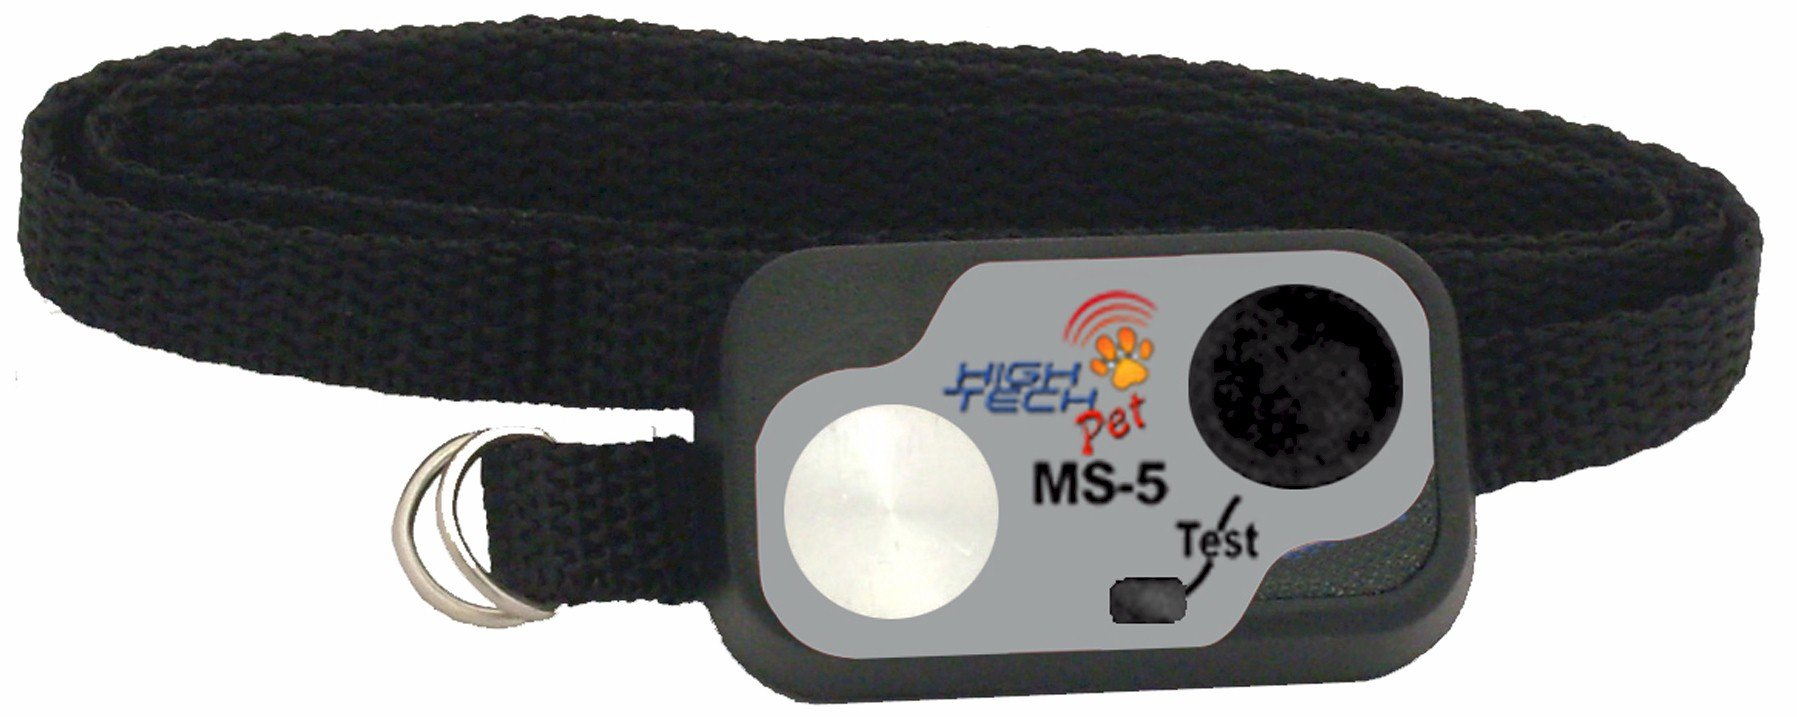 High Tech Pet Micro Sonic 5 Water-Resistant Collar with Digital Transmitter MS-5 by High Tech Pet